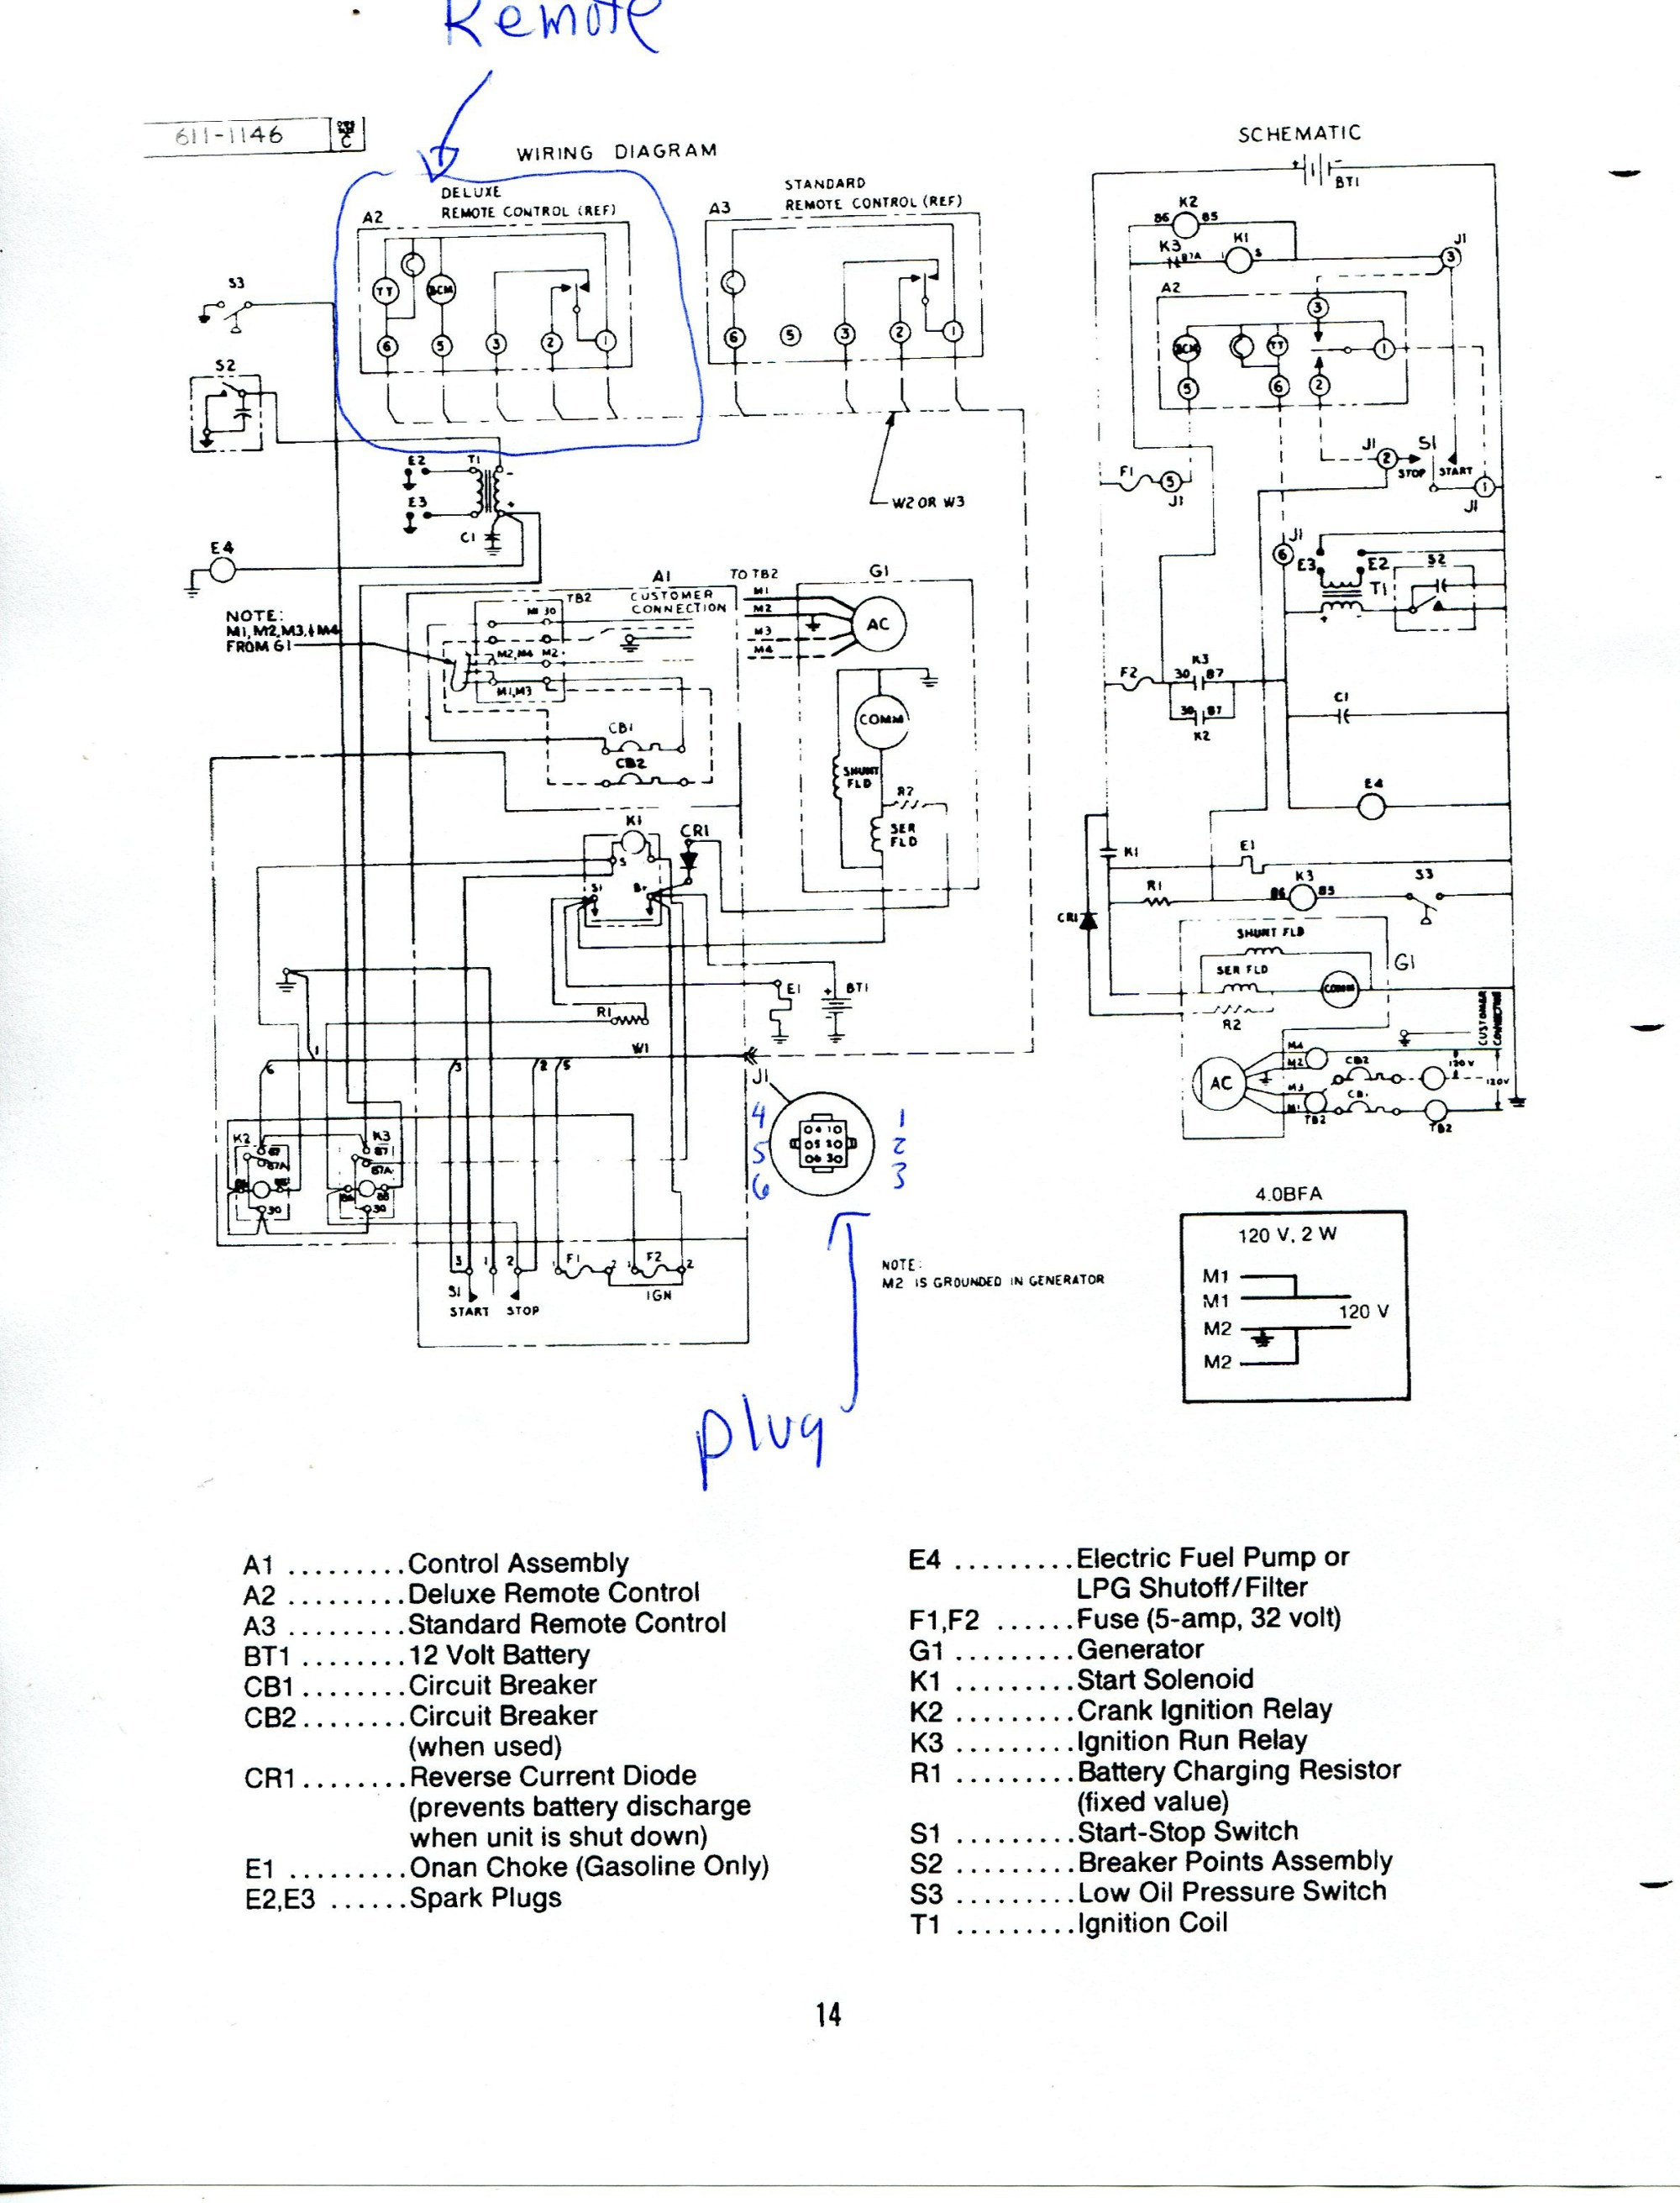 hight resolution of wiring diagram onan genset wiring diagram infowiring diagram for onan generator control panel wiring diagram inside